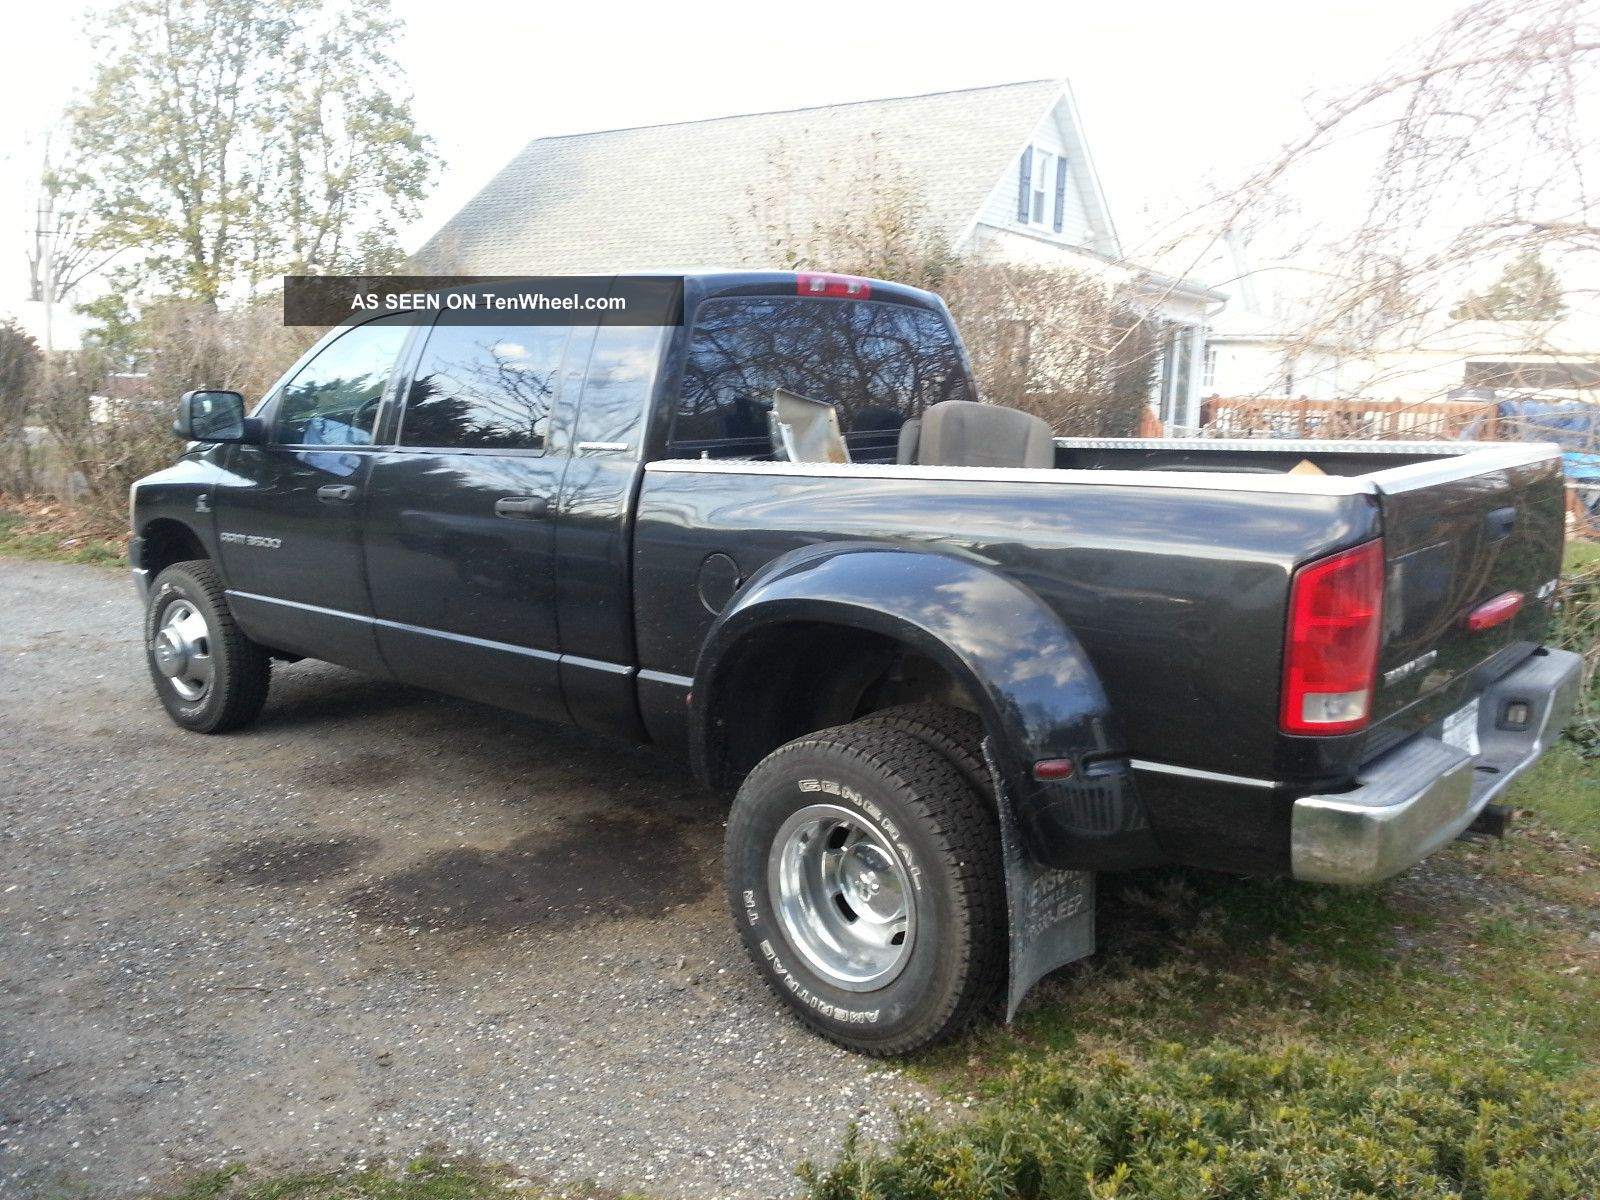 2006 dodge ram 3500 slt mega cab dully pickup 5 9 cummins. Black Bedroom Furniture Sets. Home Design Ideas